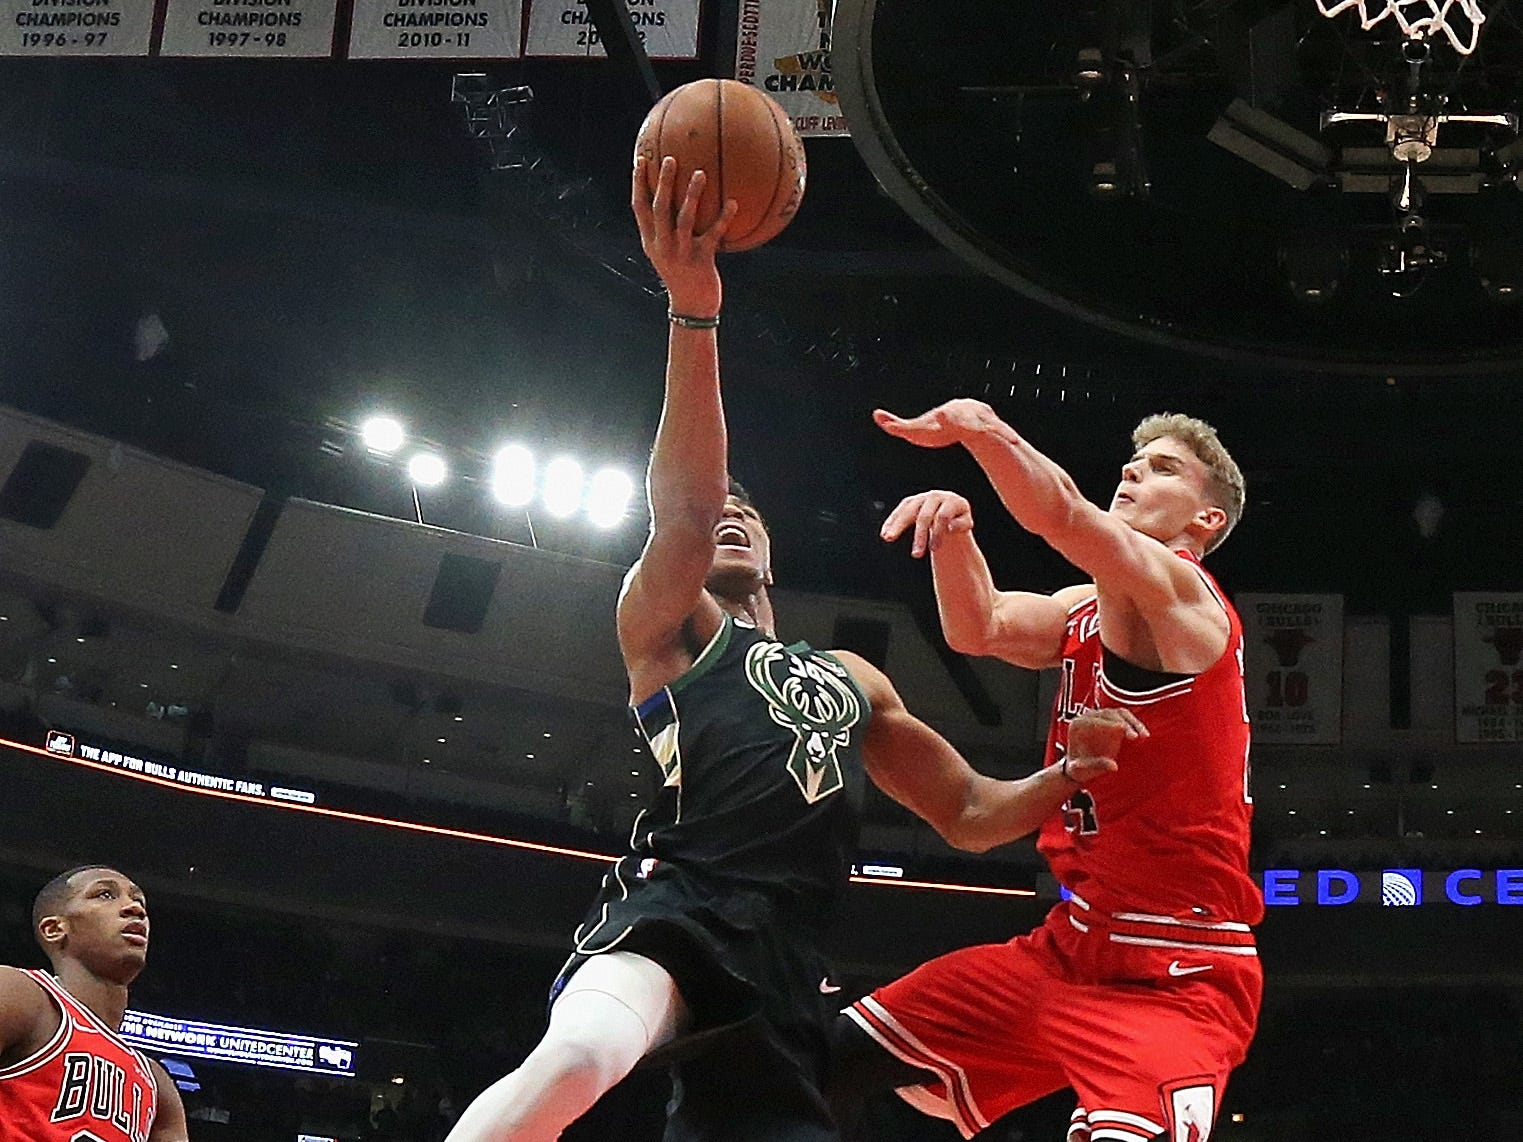 Giannis Antetokounmpo of the Bucks drives to the basket with Lauri Markkanen of the Bulls guarding him on Monday night.